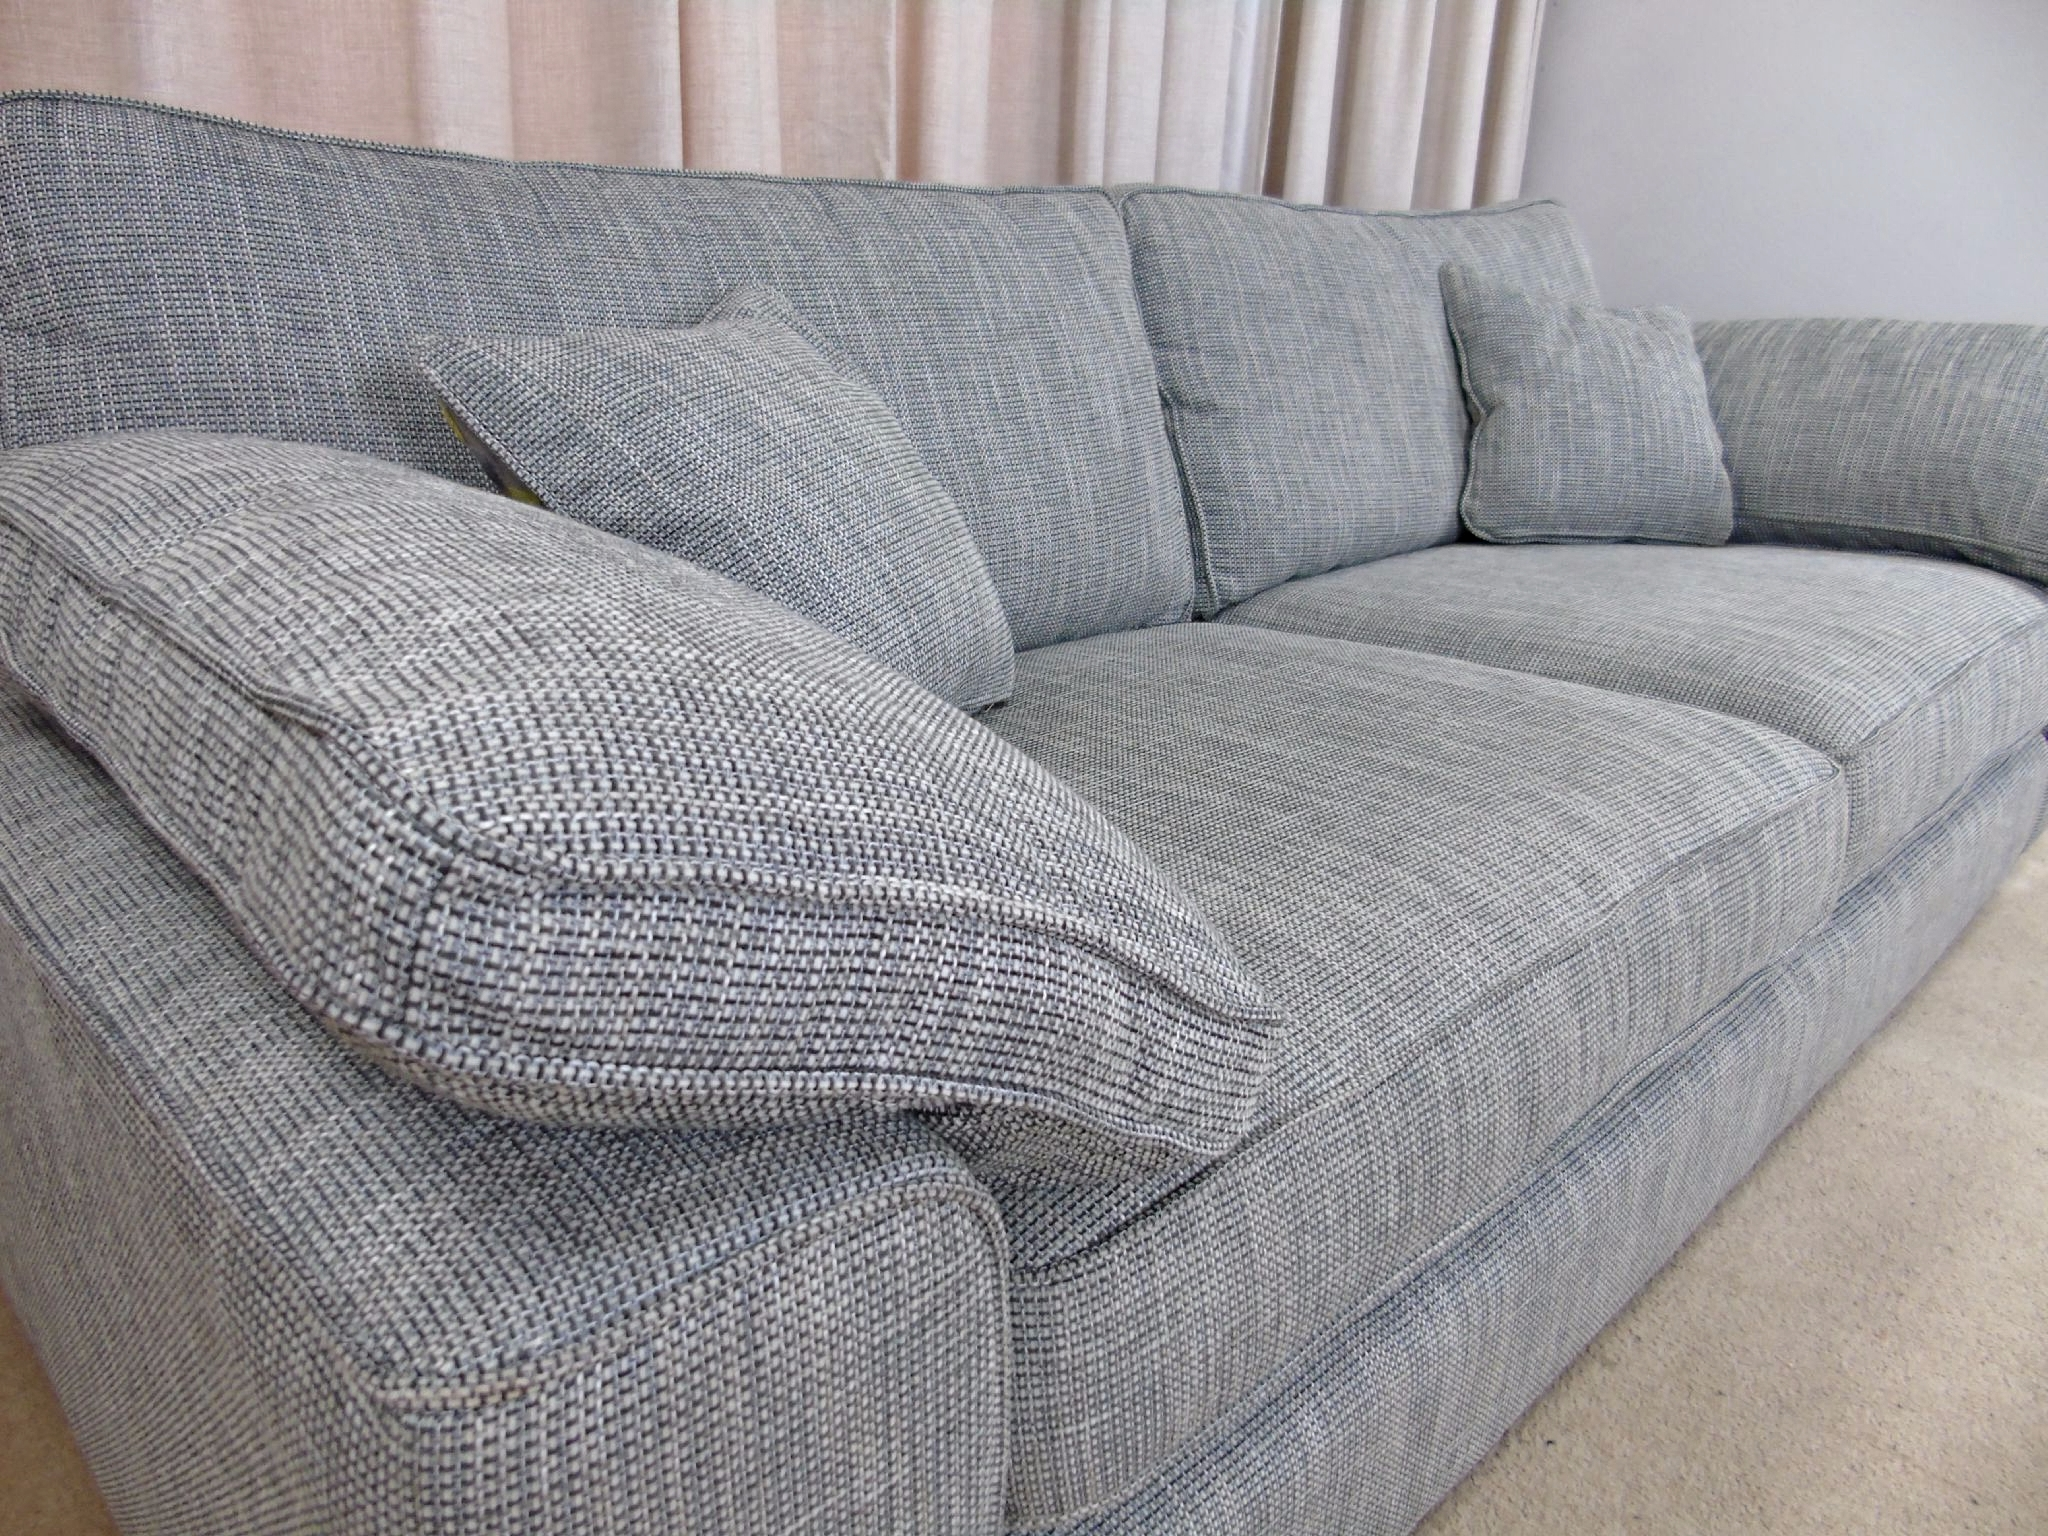 Loft Large 4 Seater Sofa Pertaining To Latest Large 4 Seater Sofas (View 10 of 20)